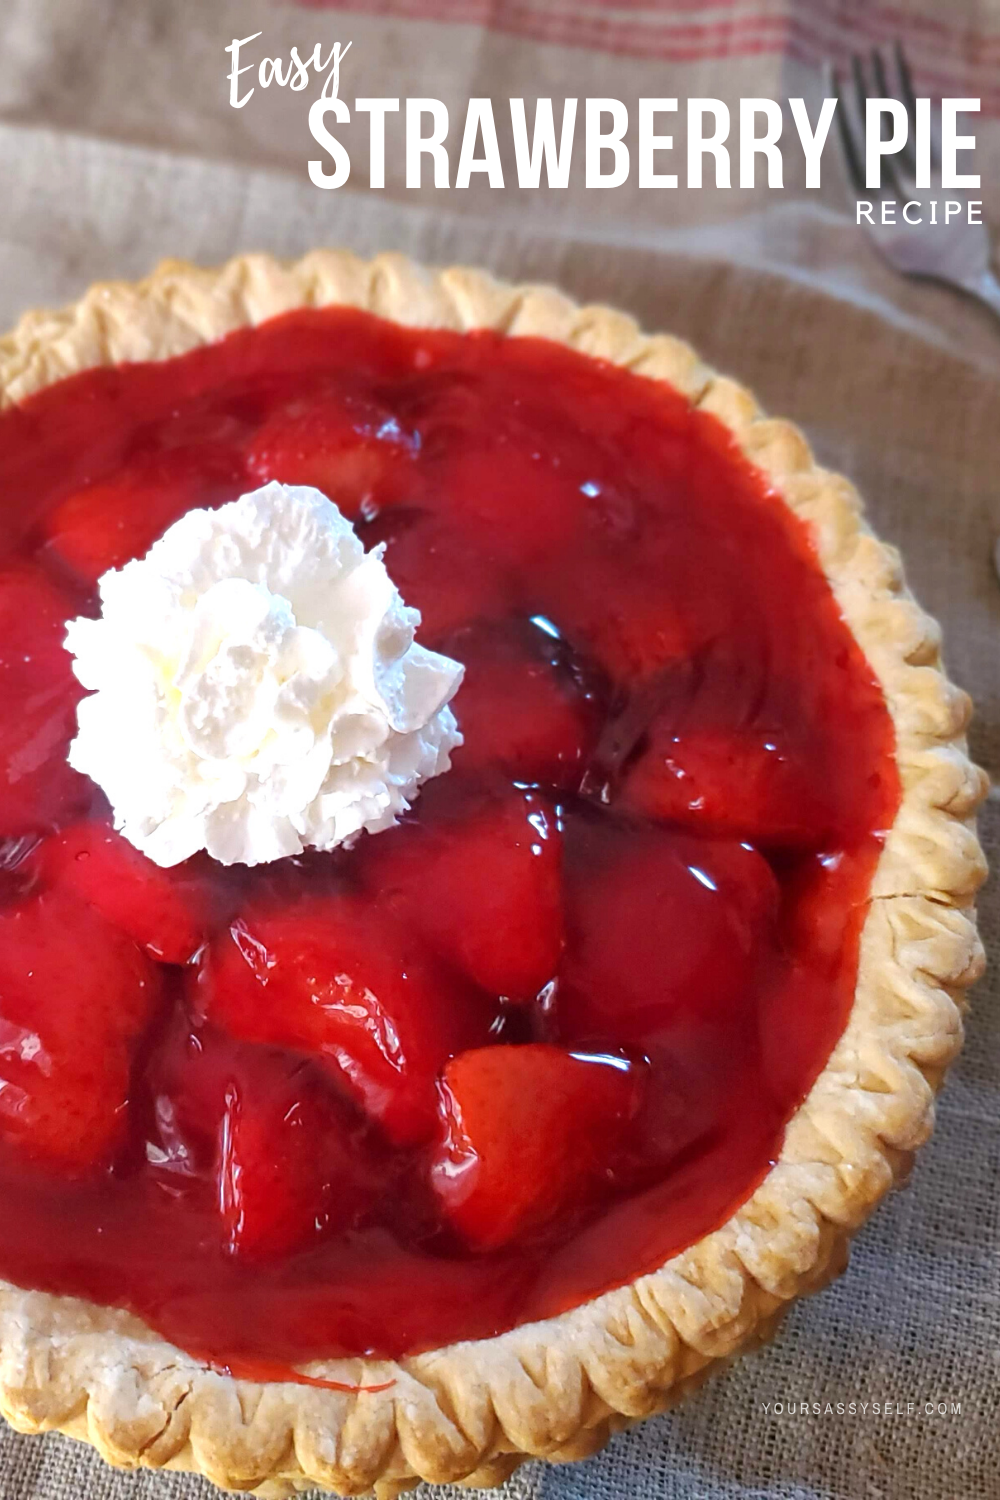 Strawberry Pie with Whipped Cream - yoursassyself.com